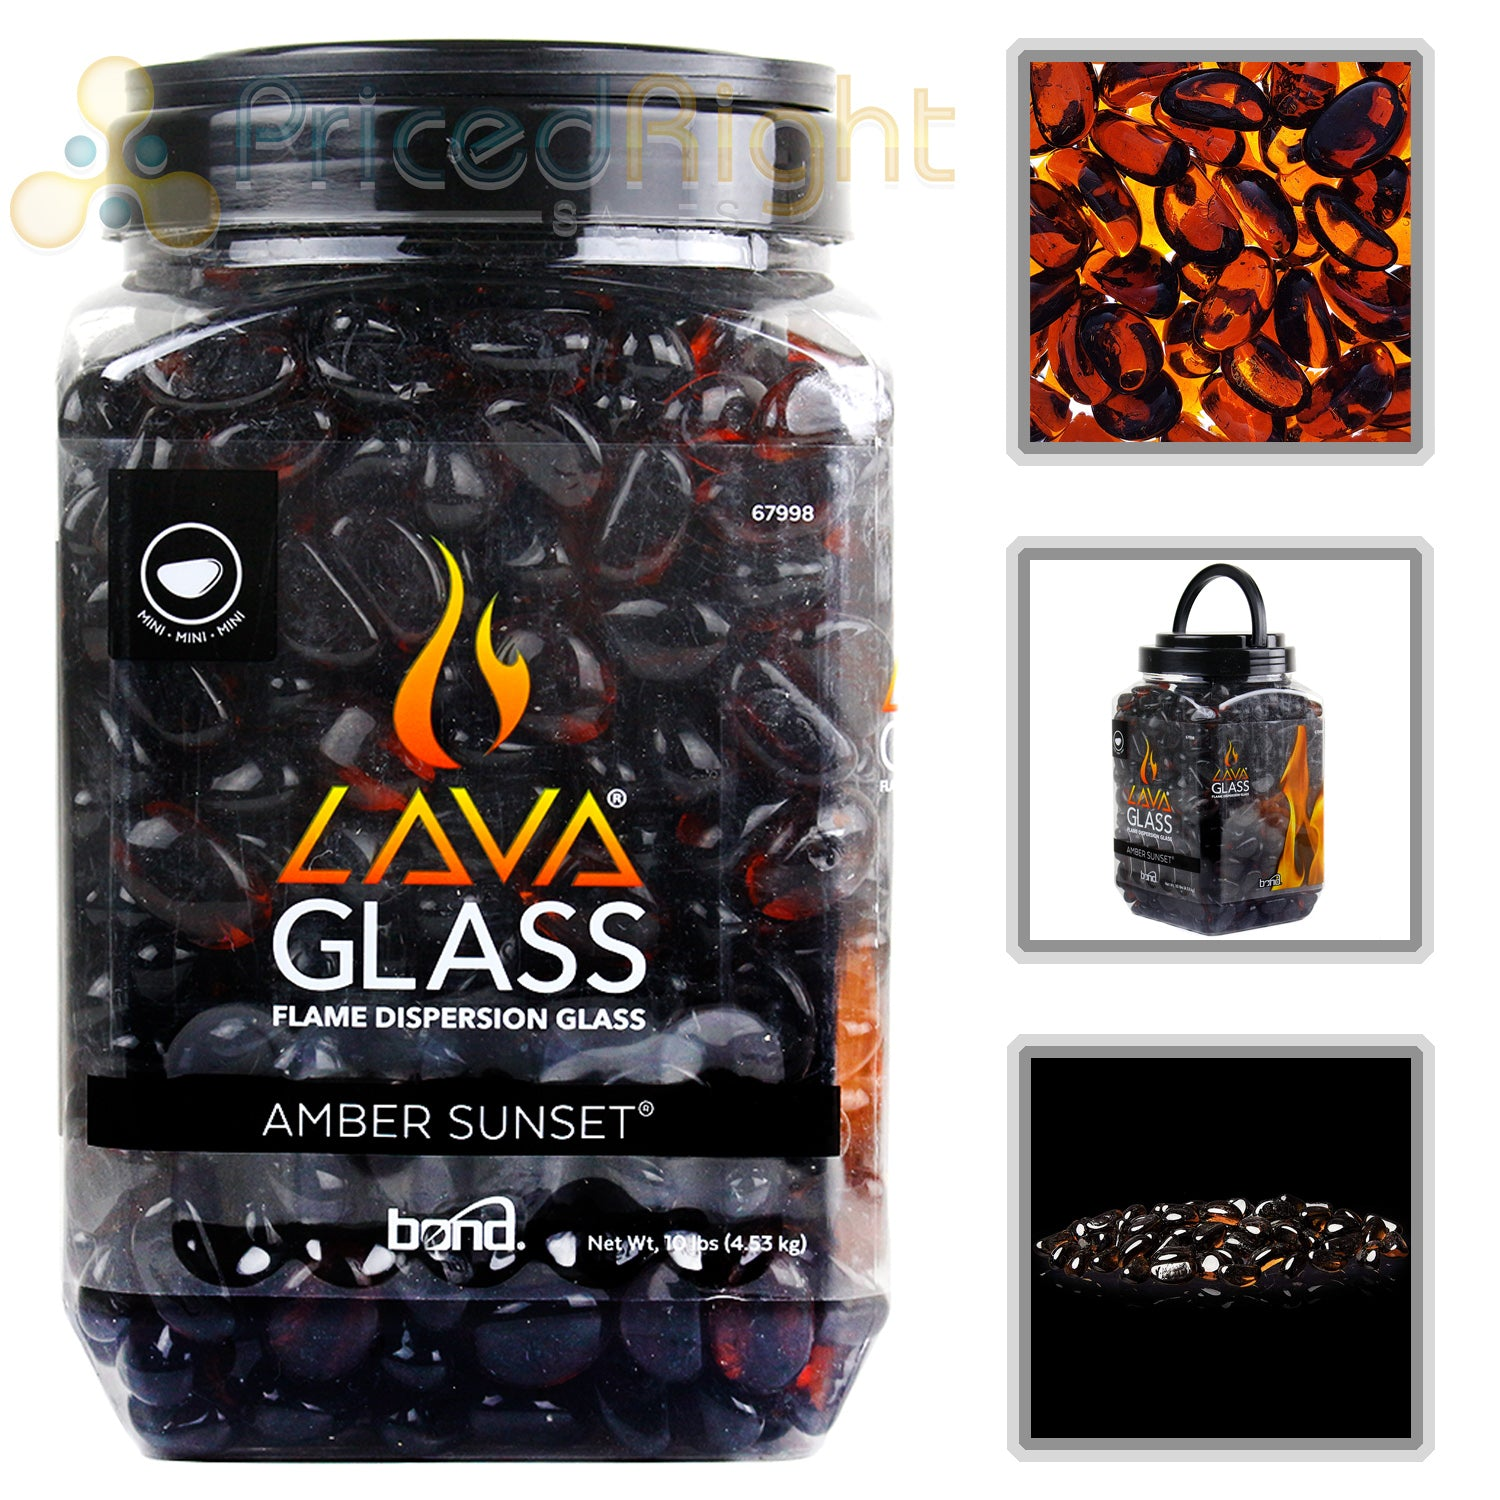 Gas Fireplace Amber Sunset Mini LavaGlass Firepit Dispersion Glass 10 lbs 67998